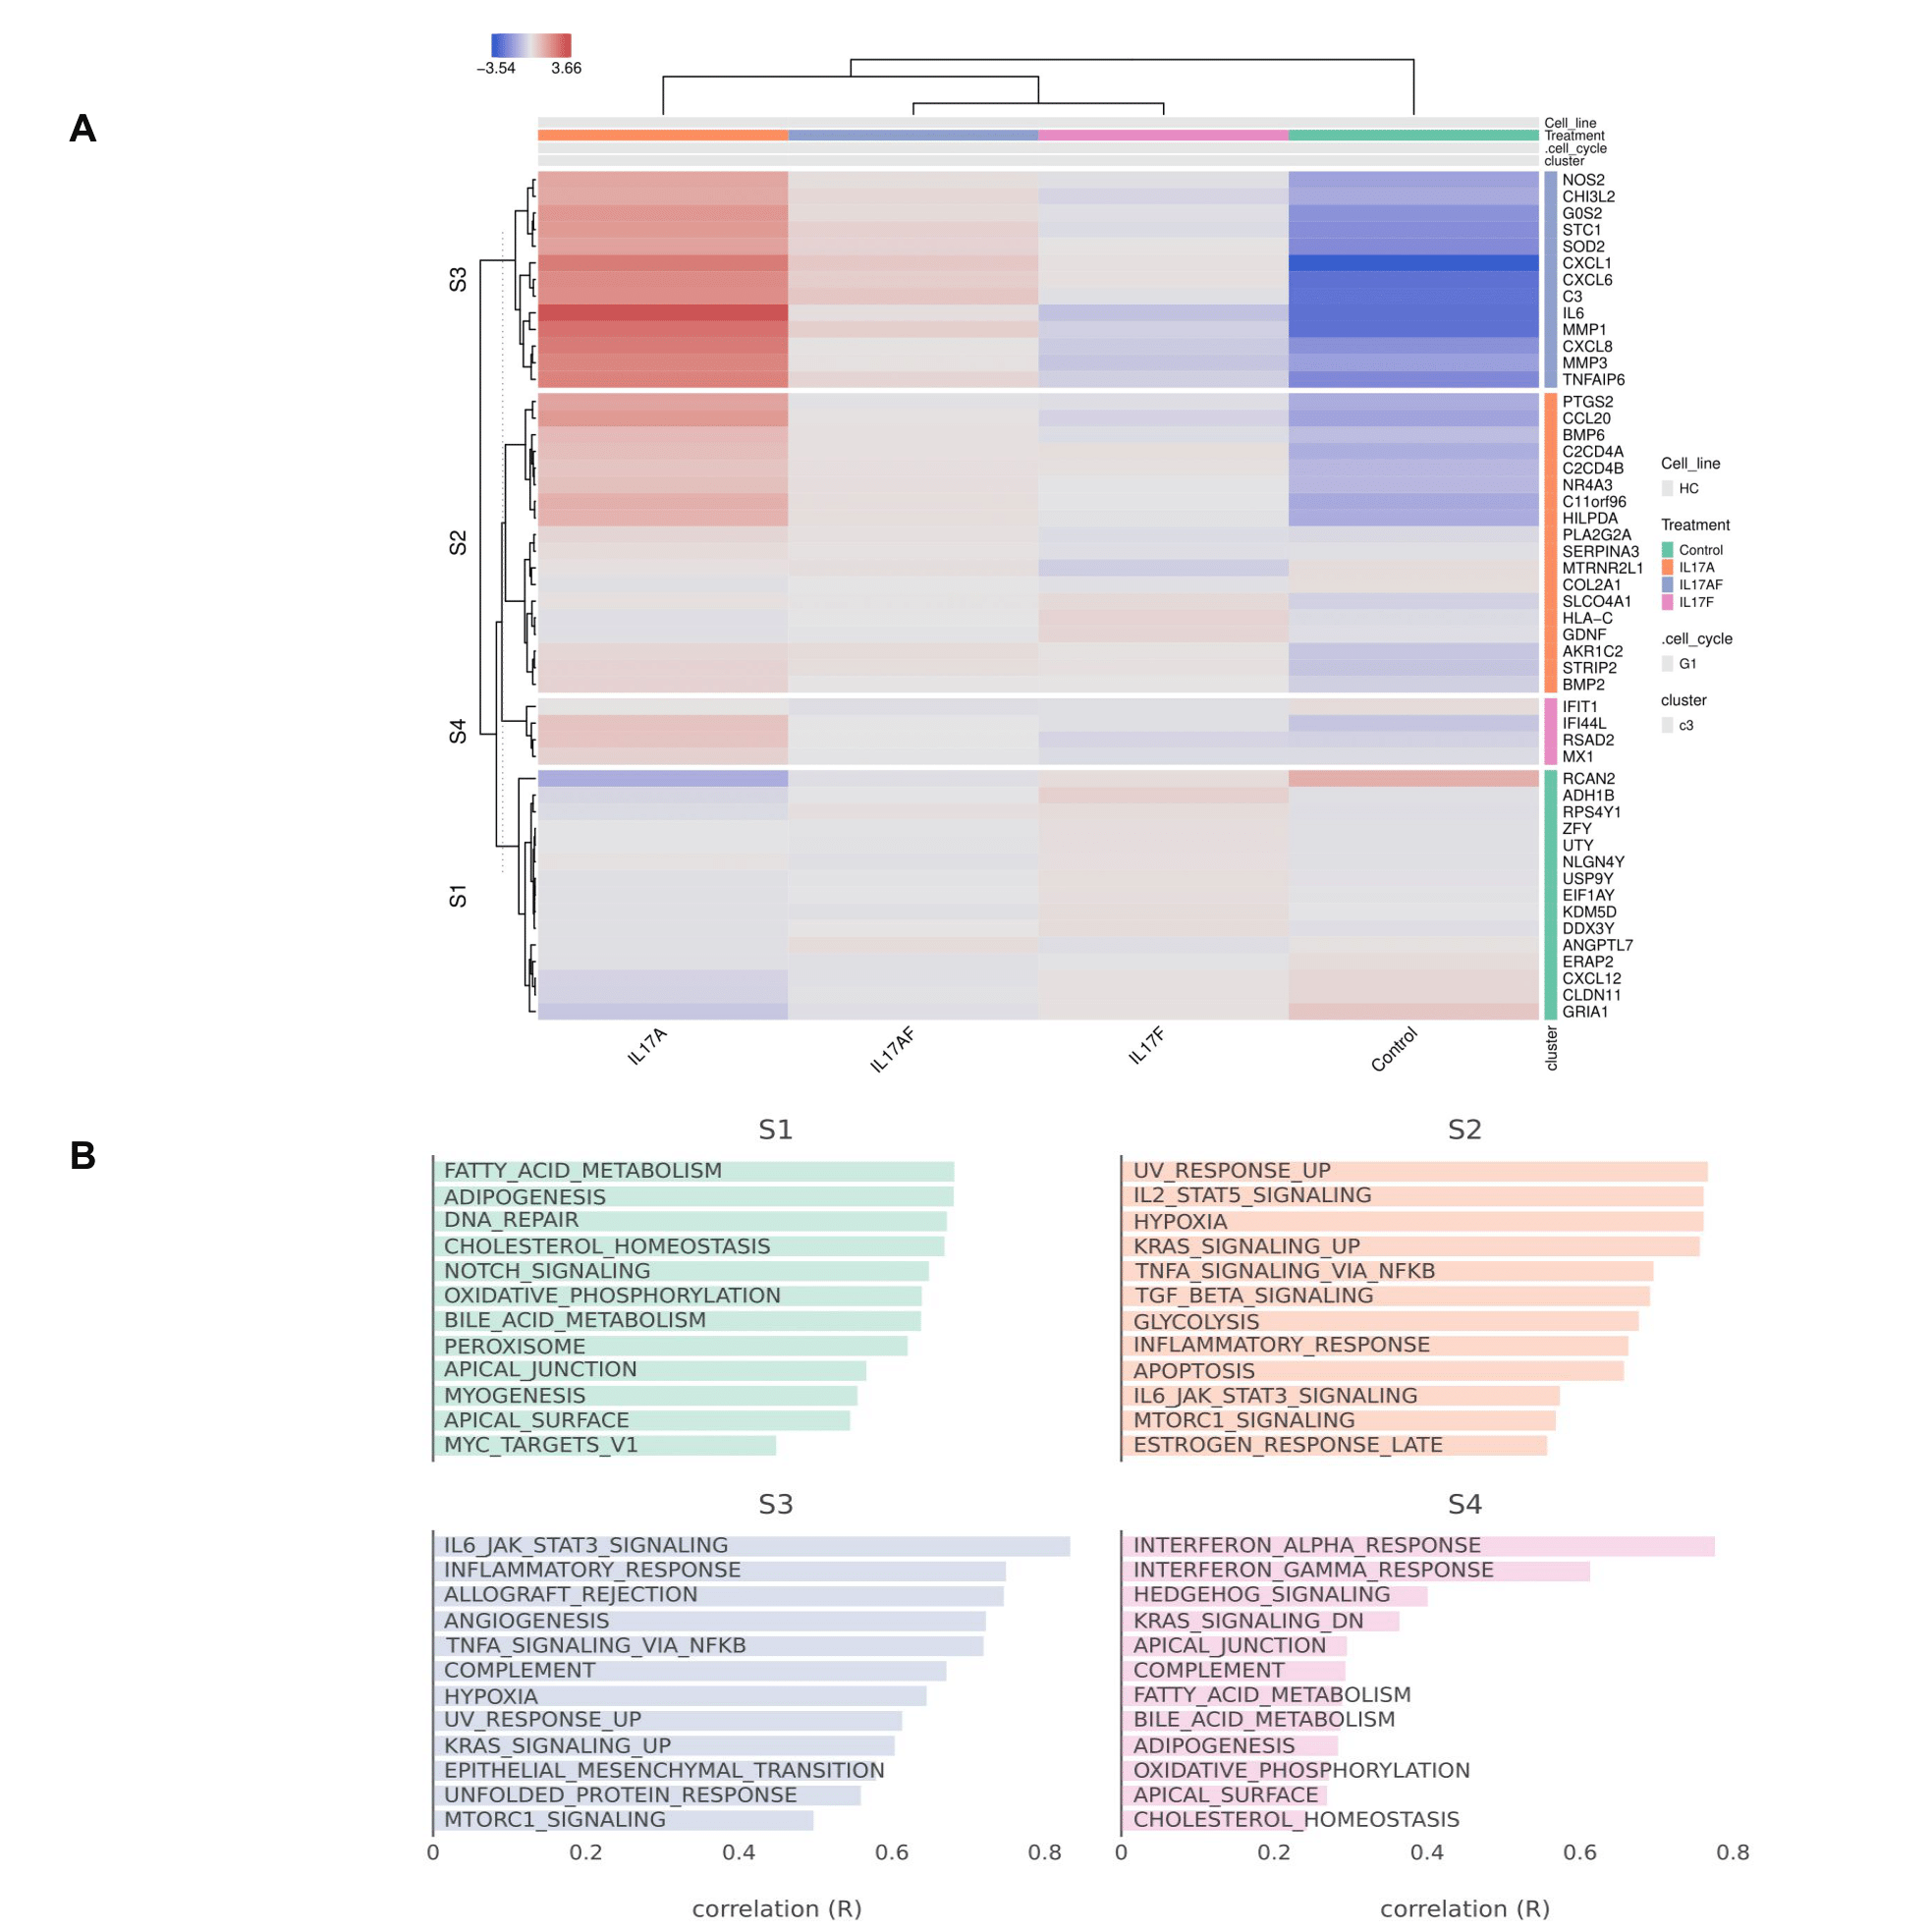 Figure 2. Clustered heatmap of the HC cell type samples grouped by treatment. Genes are divided into four main clusters (S1-4).